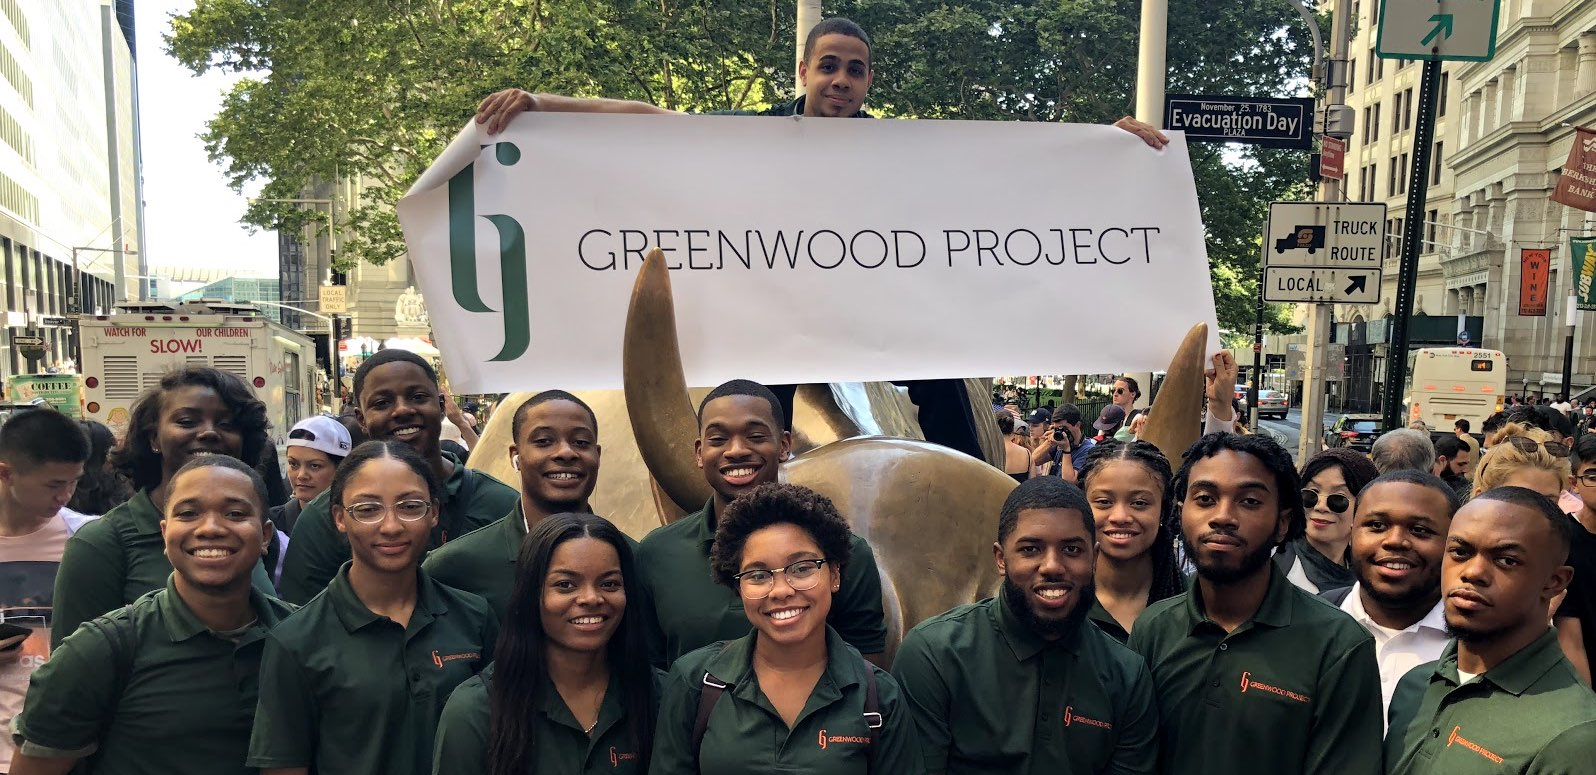 The Greenwood Project, The Greenwood Project Chicago, The Greenwood Project Organization,  Chicago-based non-profit, Chicago organization for kids, youth careers within the financial industry, diversity, Introducing Minority Students To The Financial Industry, programs for minority students in chicago, Chicago worthy causes, organizations for kids, how to help the city of chicago, chicago local, chicago love, Red Soles and Red Wine, Jennifer Worman